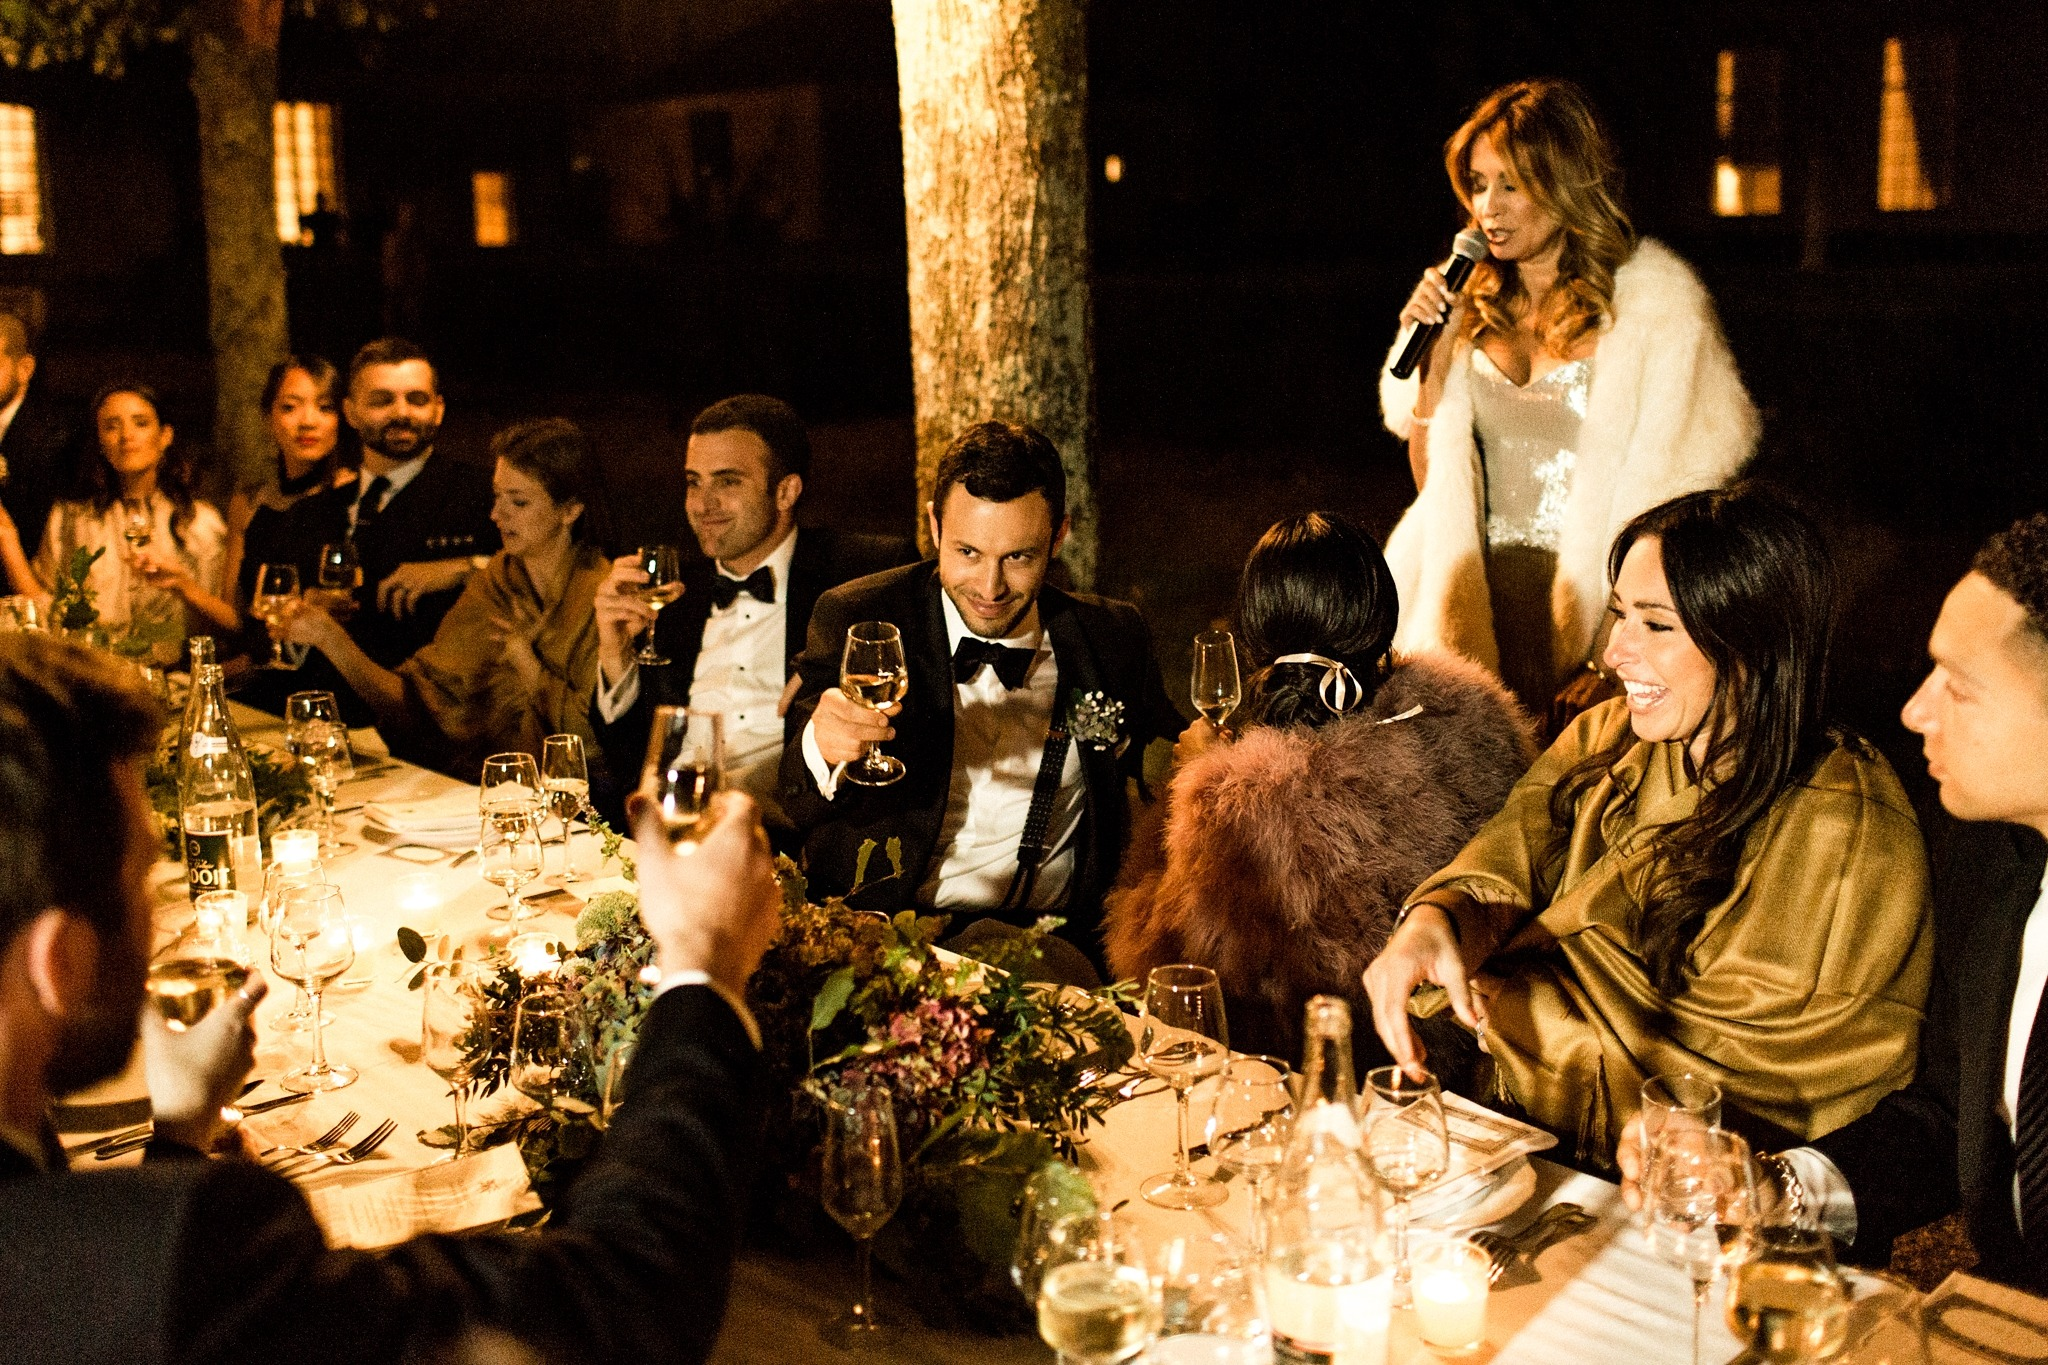 chateau-wedding-france-chanel-eric-as-seen-on-vogue-with-sarah-falugo-photographer_0176